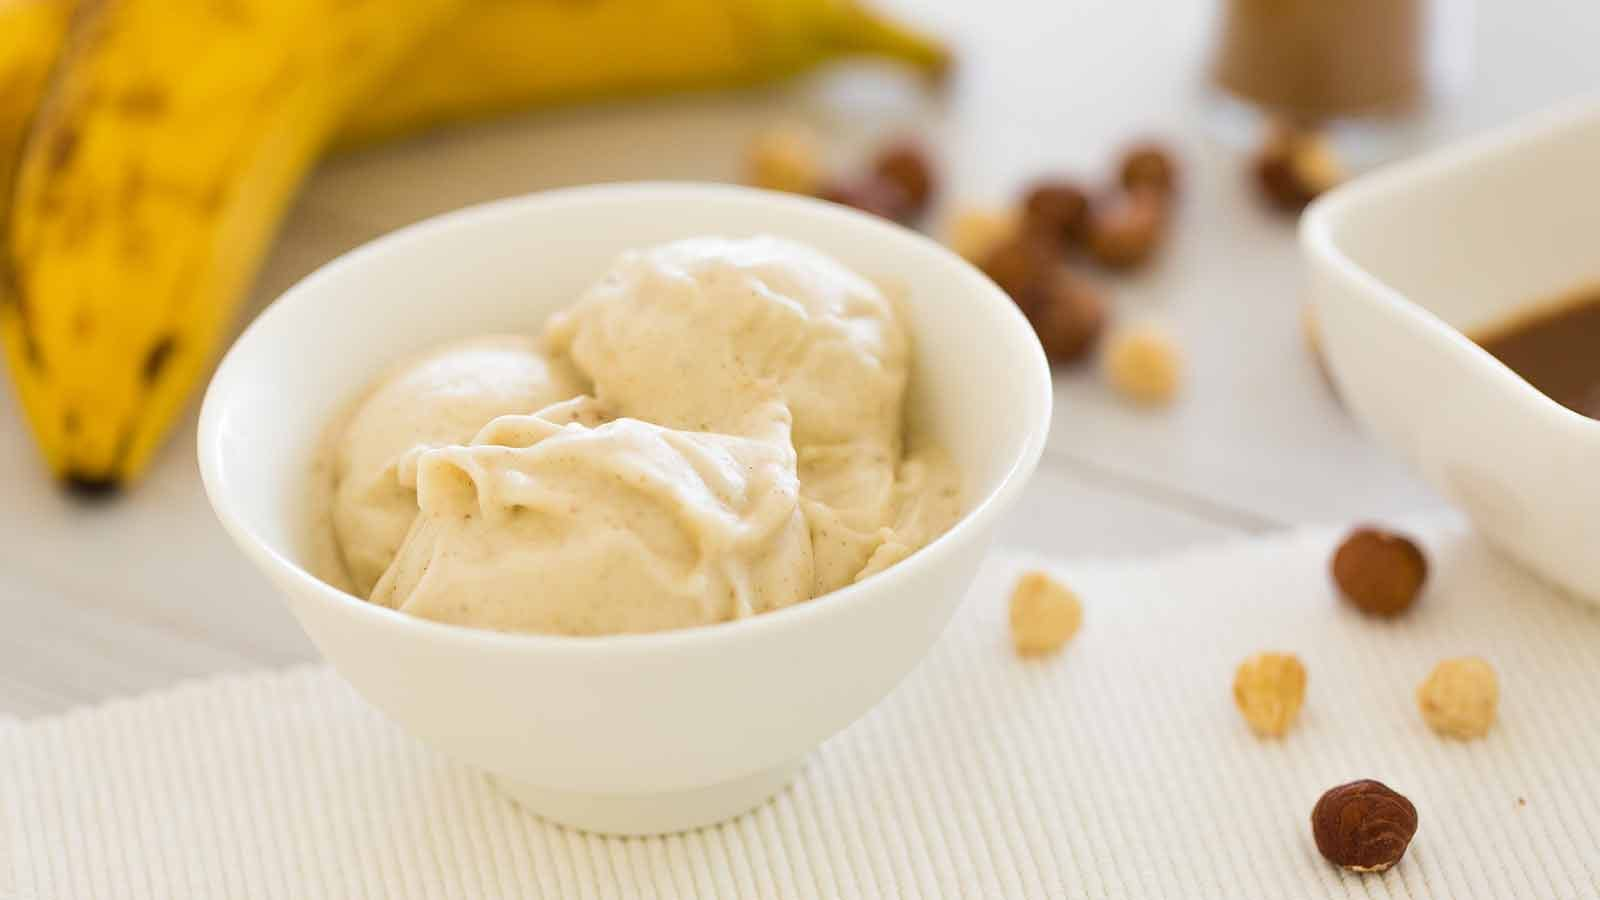 A bowl of alternative ice cream sitting on a table next to some bananas, dates, and nuts.